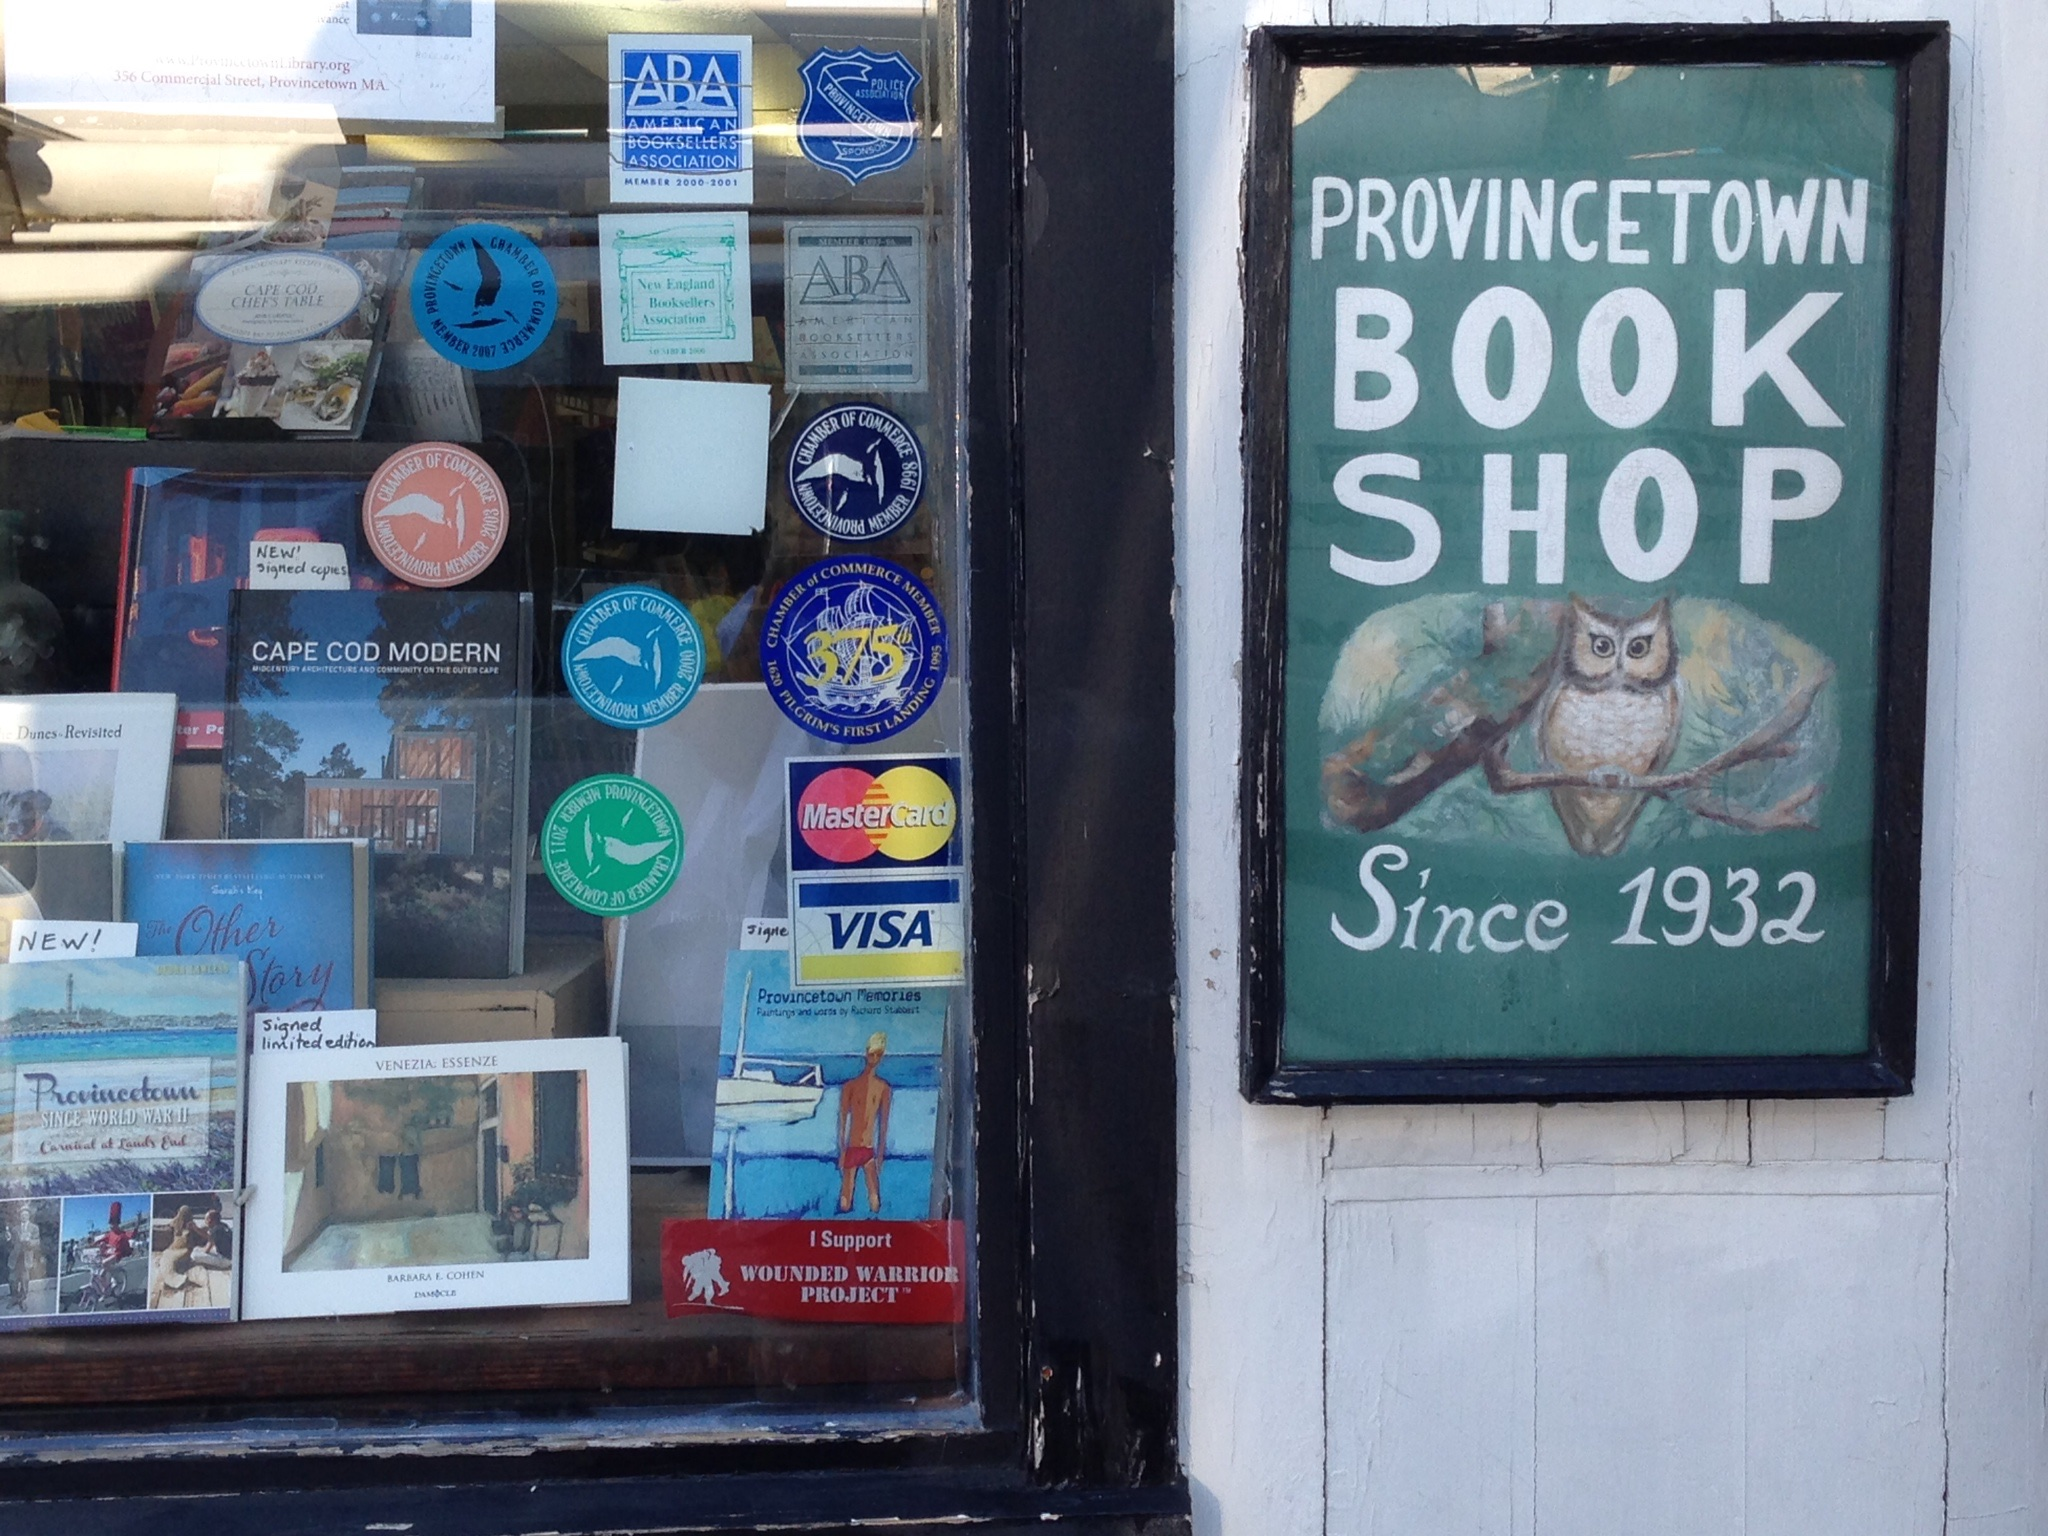 Provincetown Book Shop, July 2014 Photo: Christine Cipriani